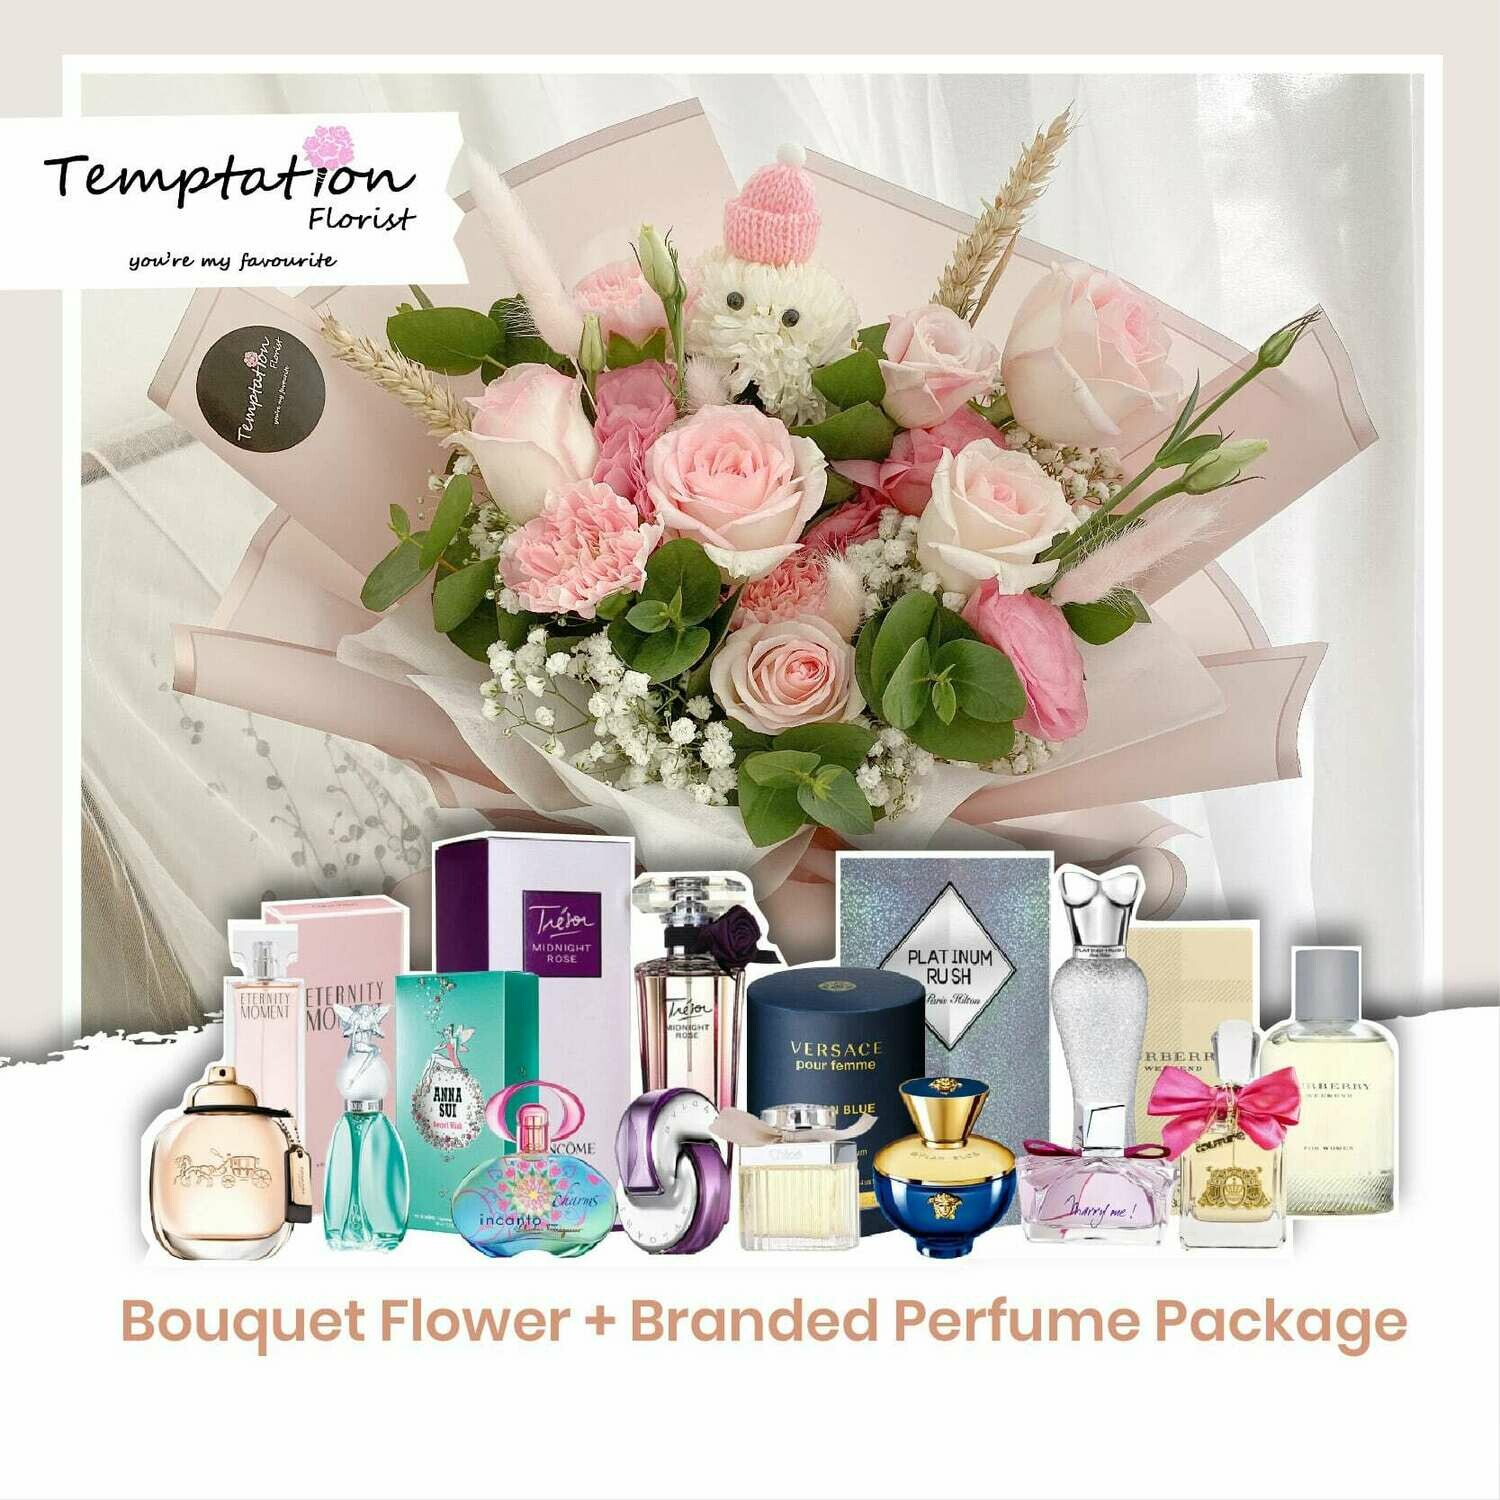 Temptation Florist Katie Bouquet + Branded Perfume Package (Free Shipping! Only Deliver in Seremban)